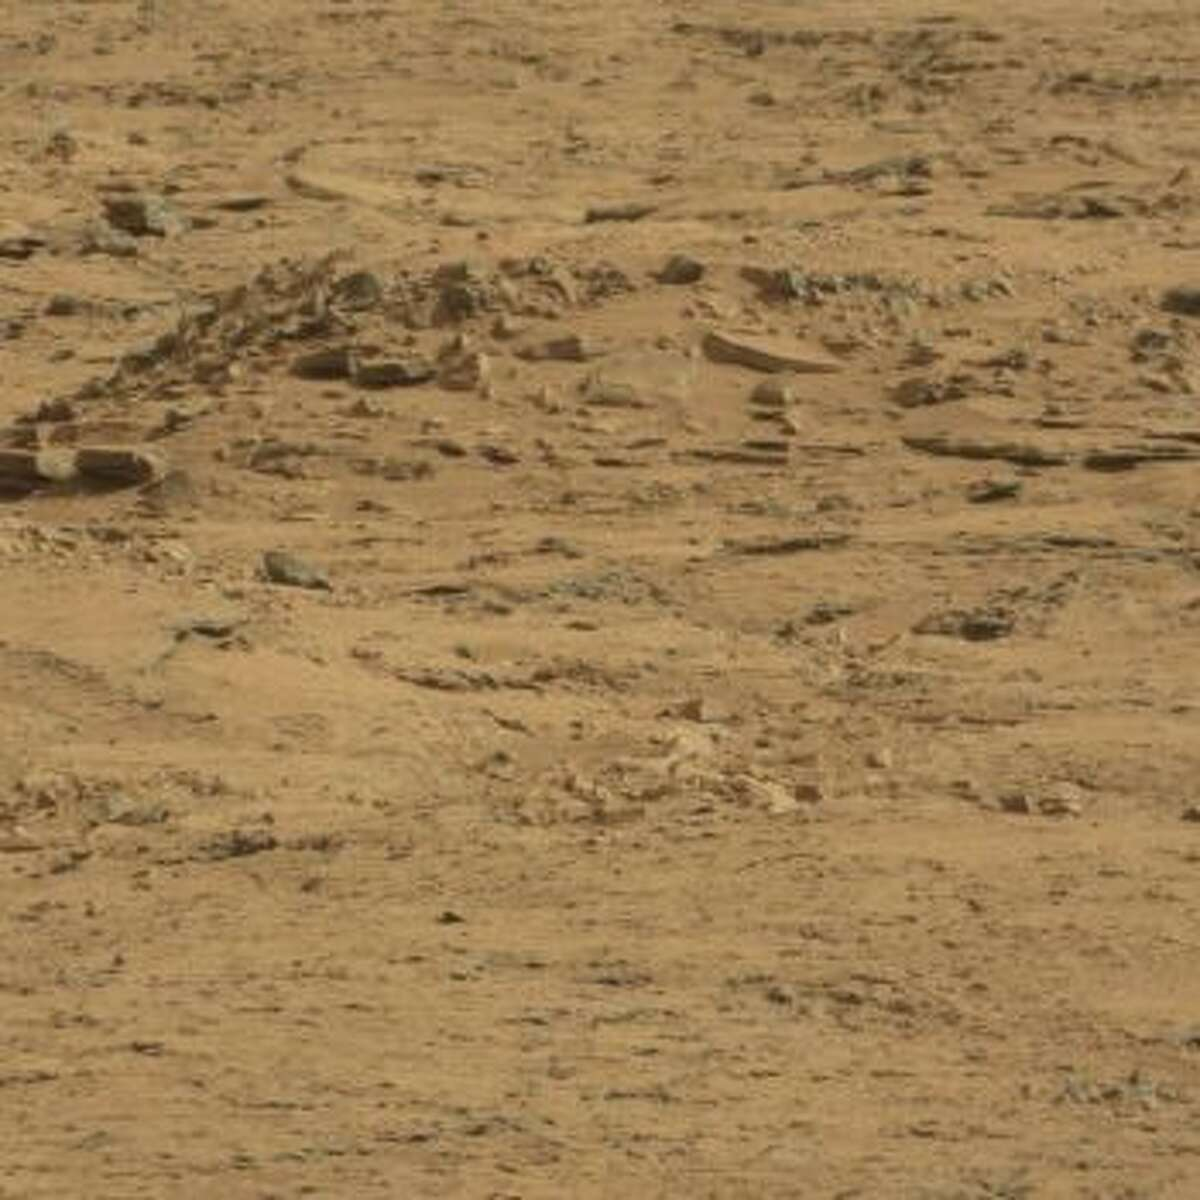 An online group has purportedly spotted a coffin on Mars.